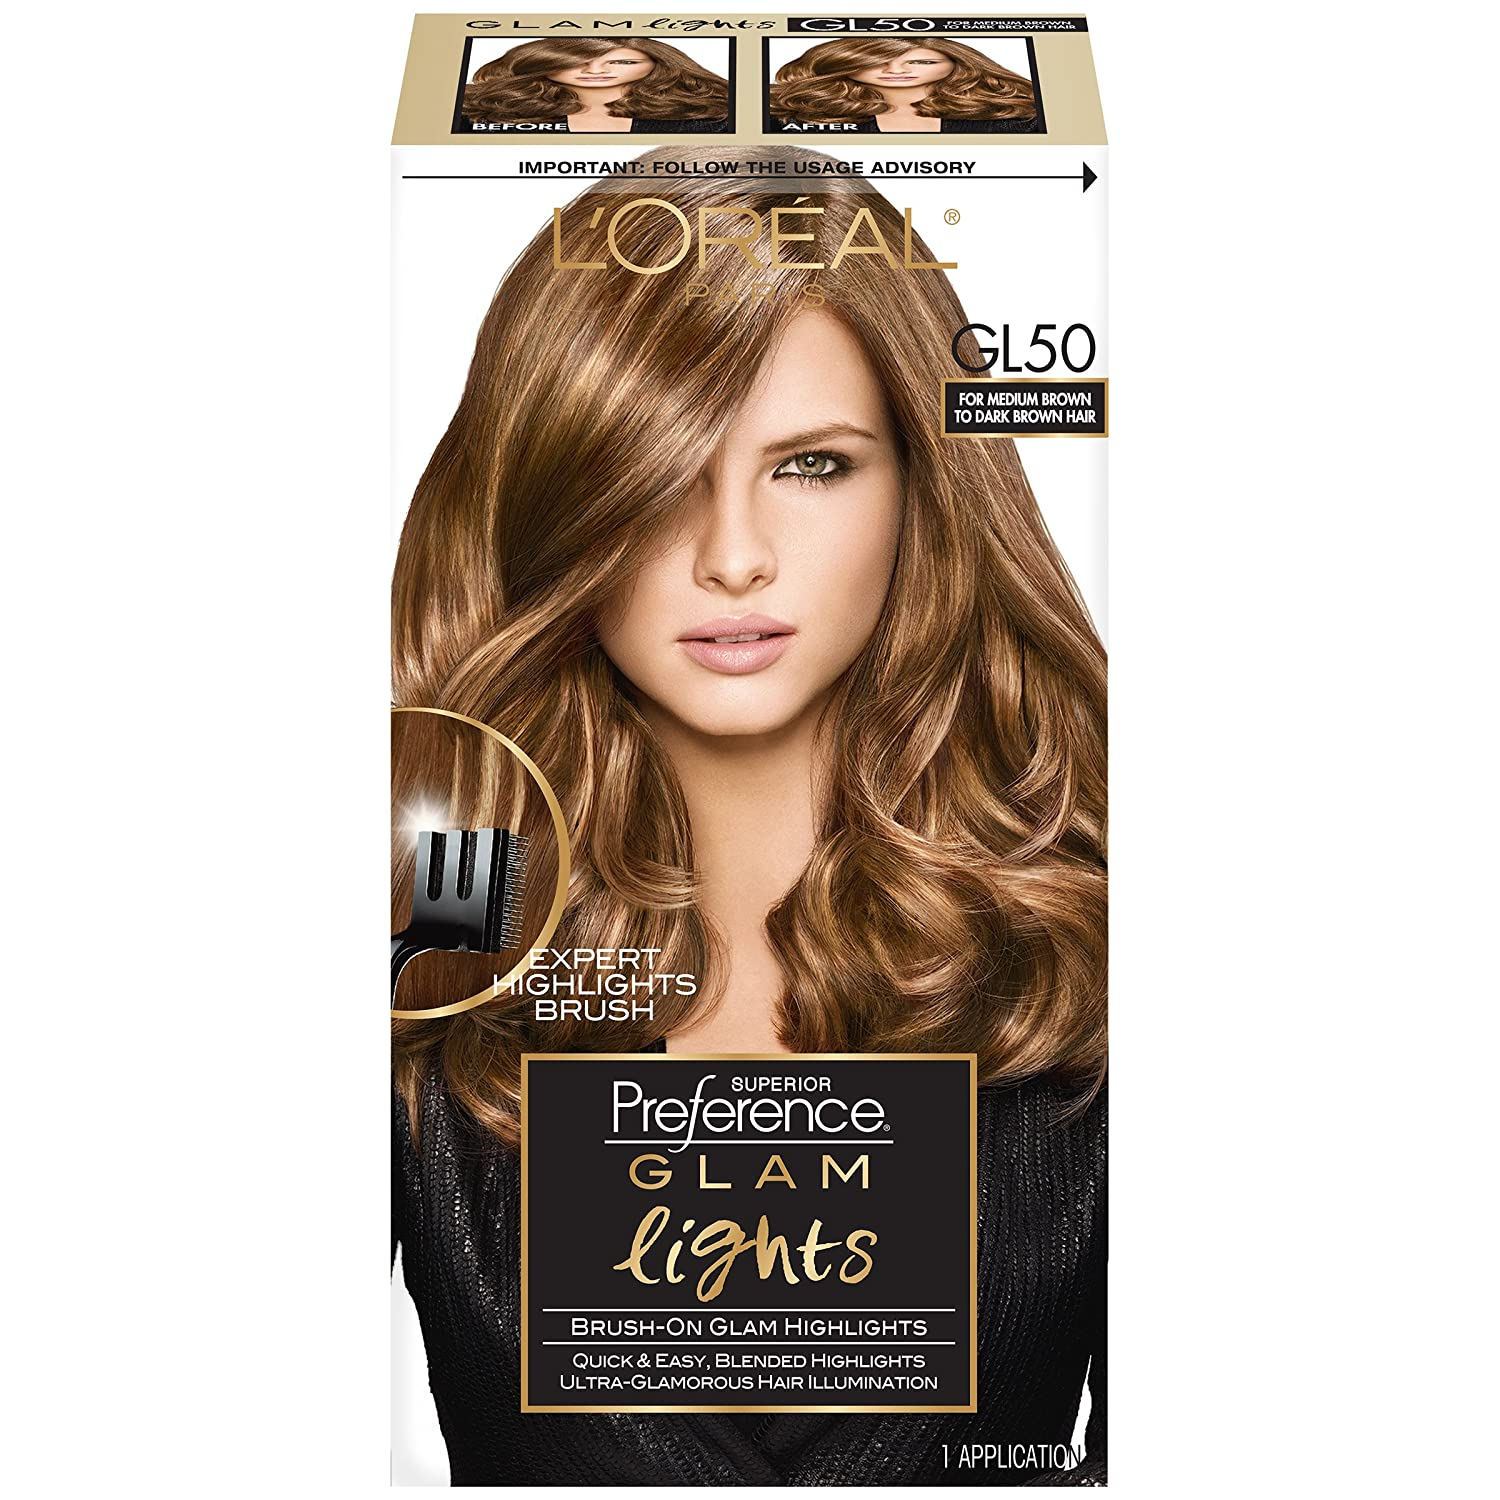 top 10 best home hair dyes for fabulous hair herstylecode 5 Top 10 Best Home Hair Dyes for Fabulous Hair